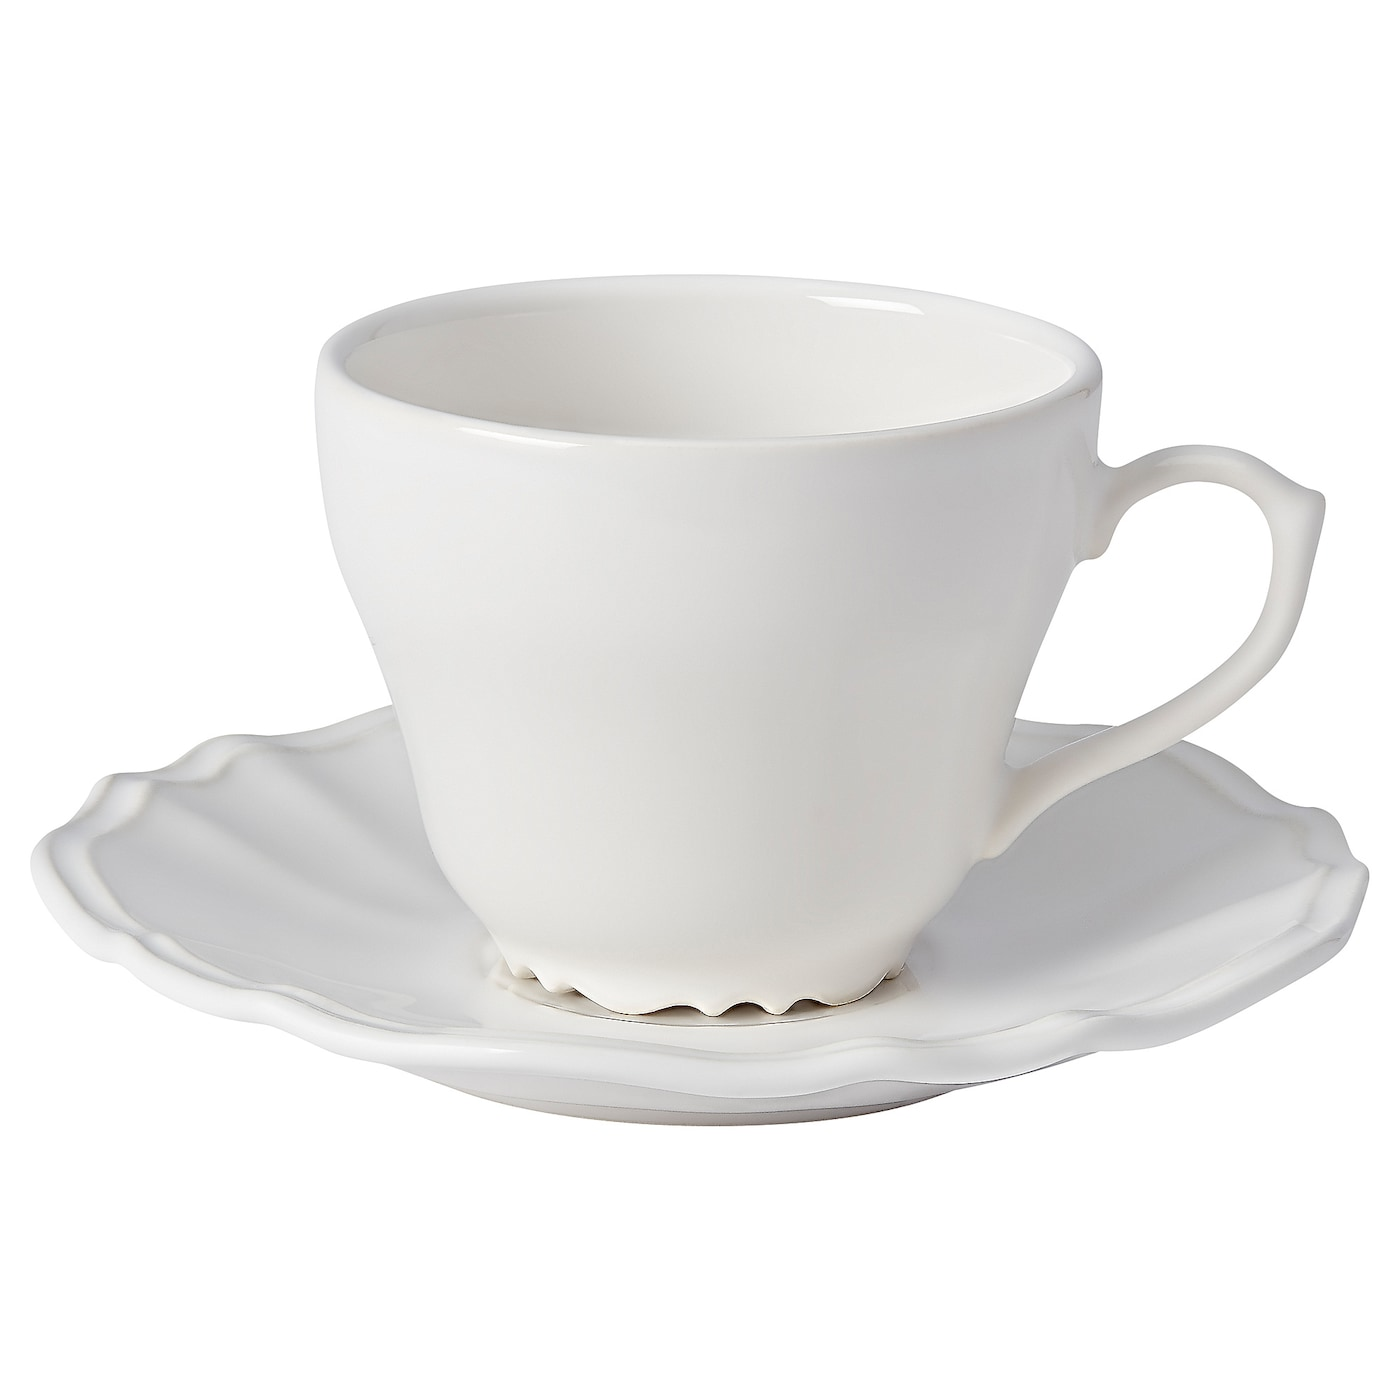 IKEA ARV coffee cup and saucer